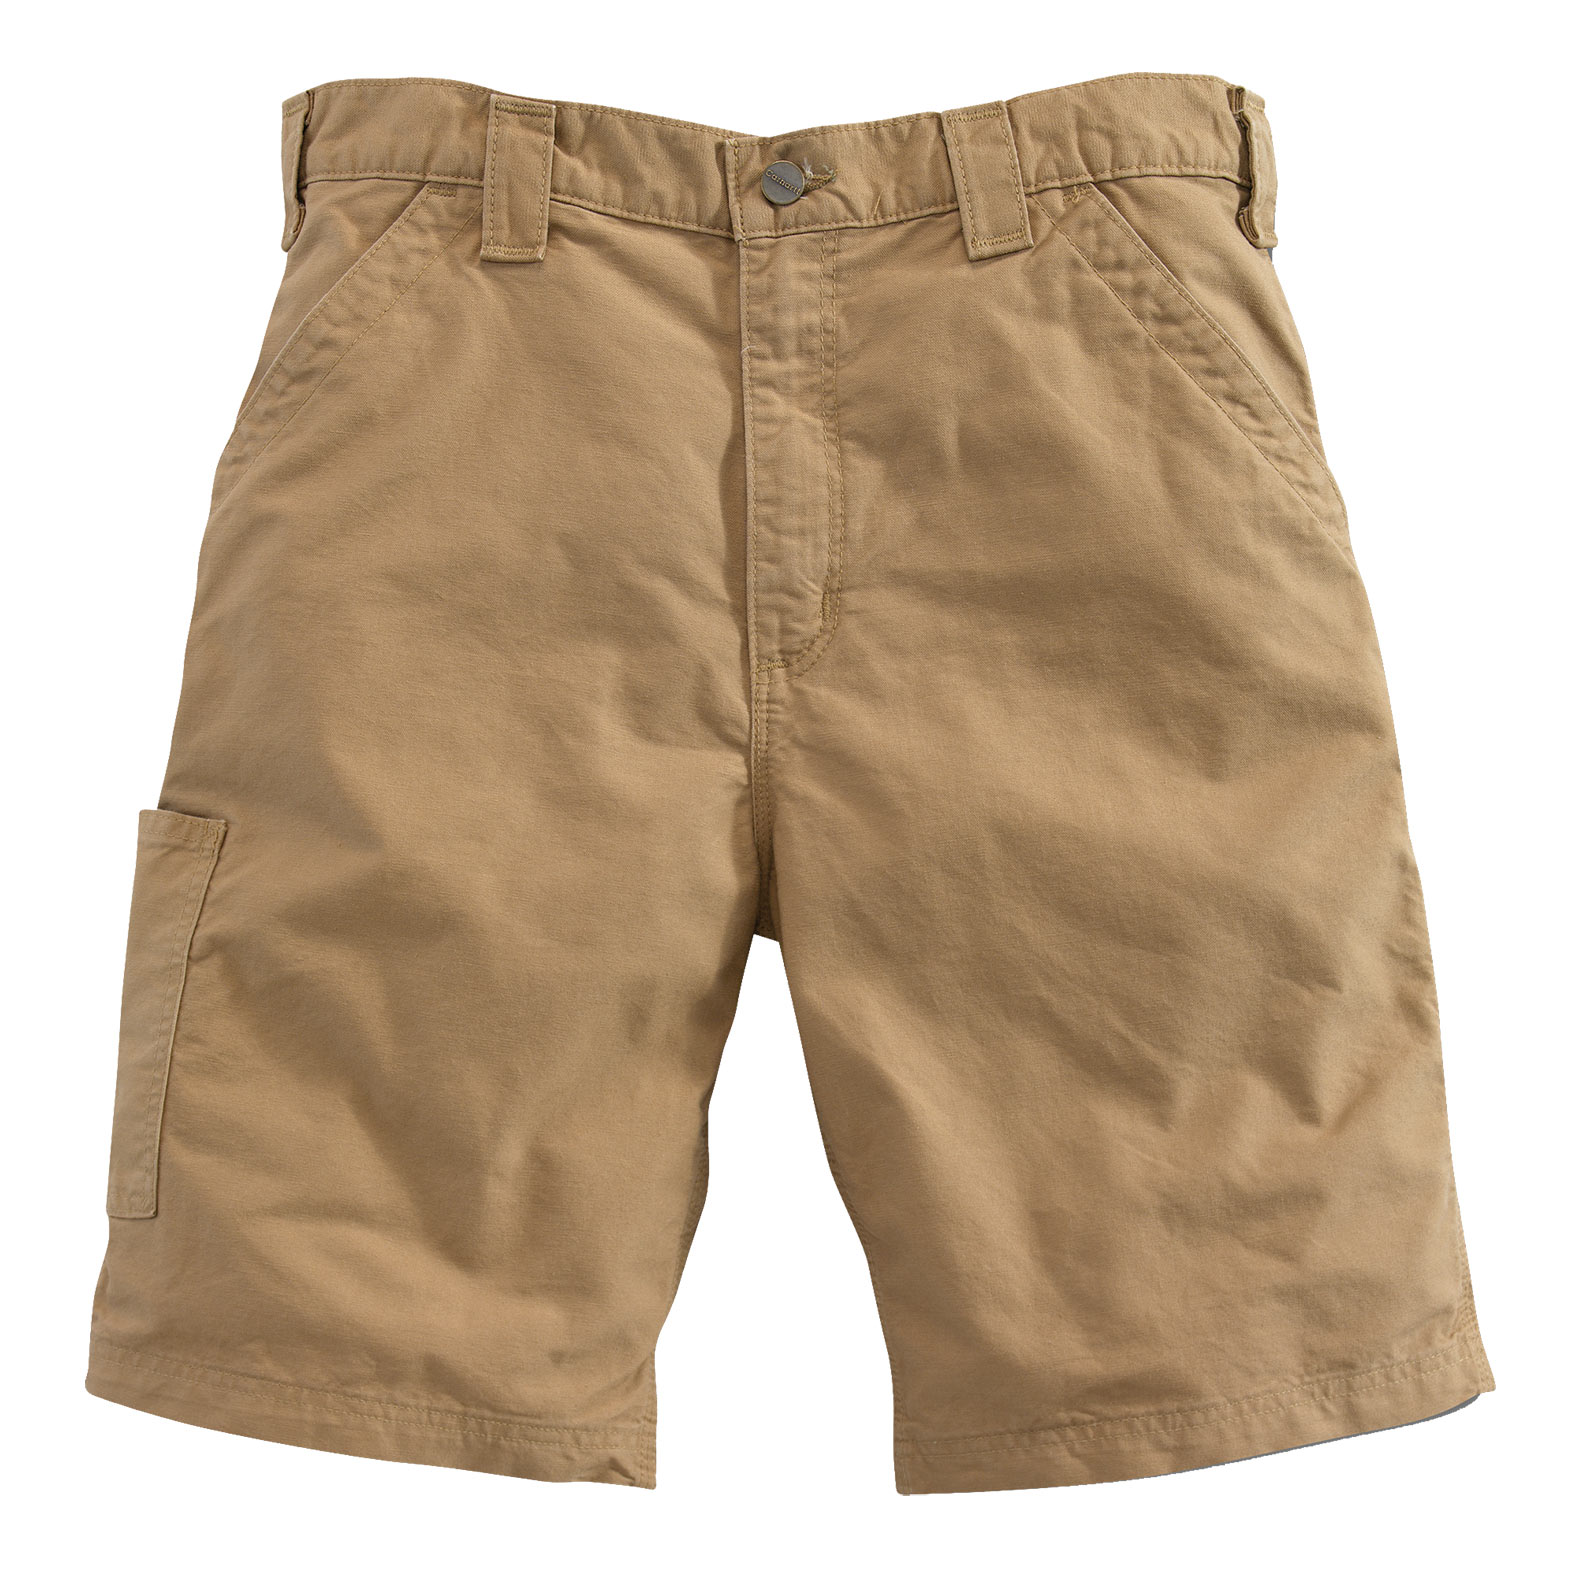 Carhartt Canvas Work Short